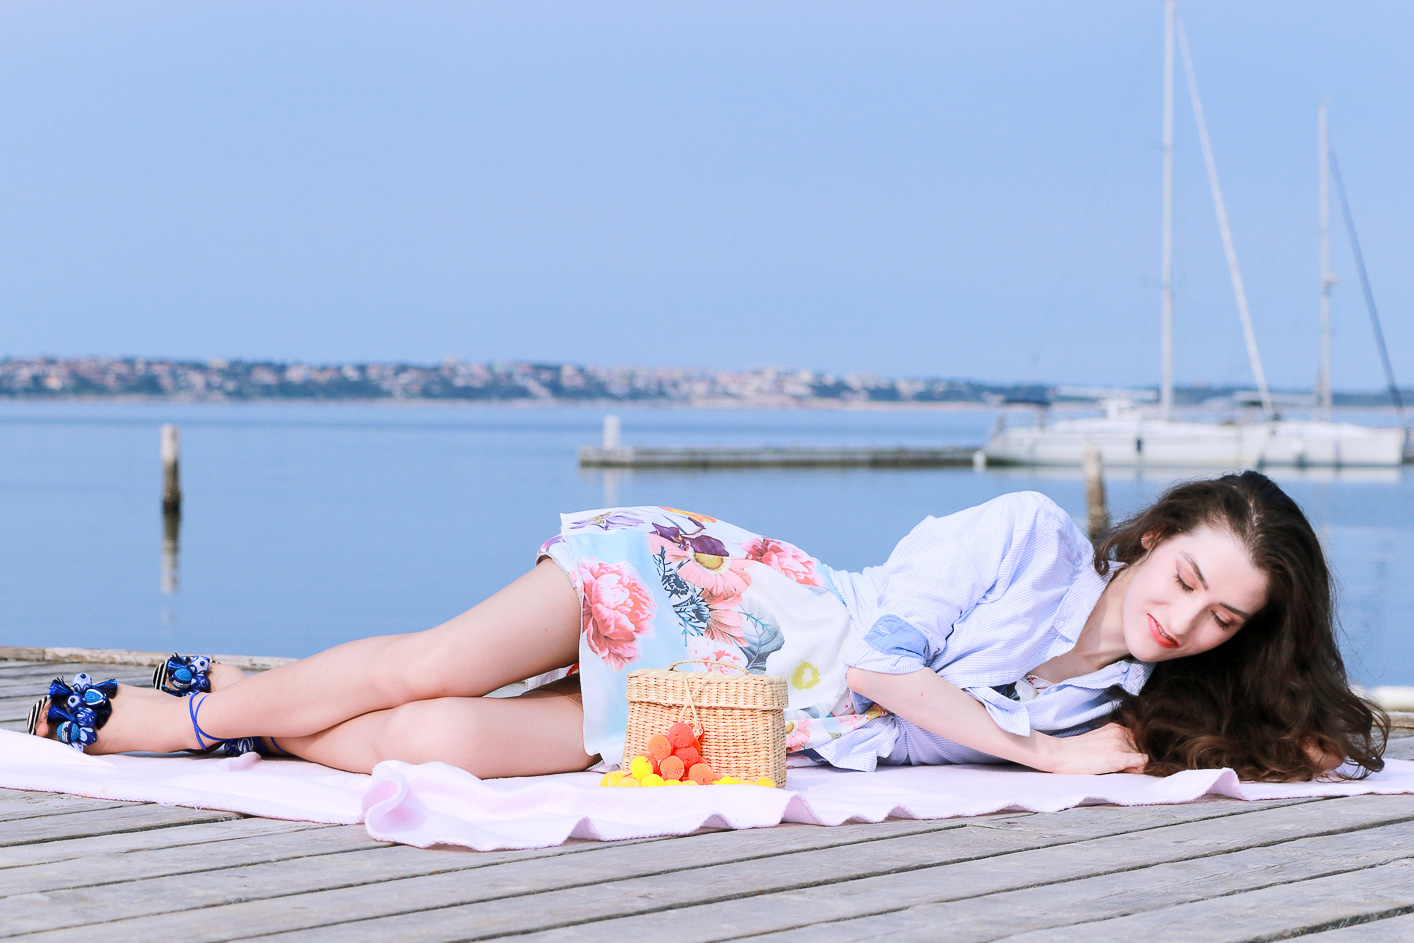 Fashion blogger Veronika Lipar of Brunette From Wall Street having first summer picnic on the beach wearing floral summer dress, a shirt with a knot and raffia basket bag